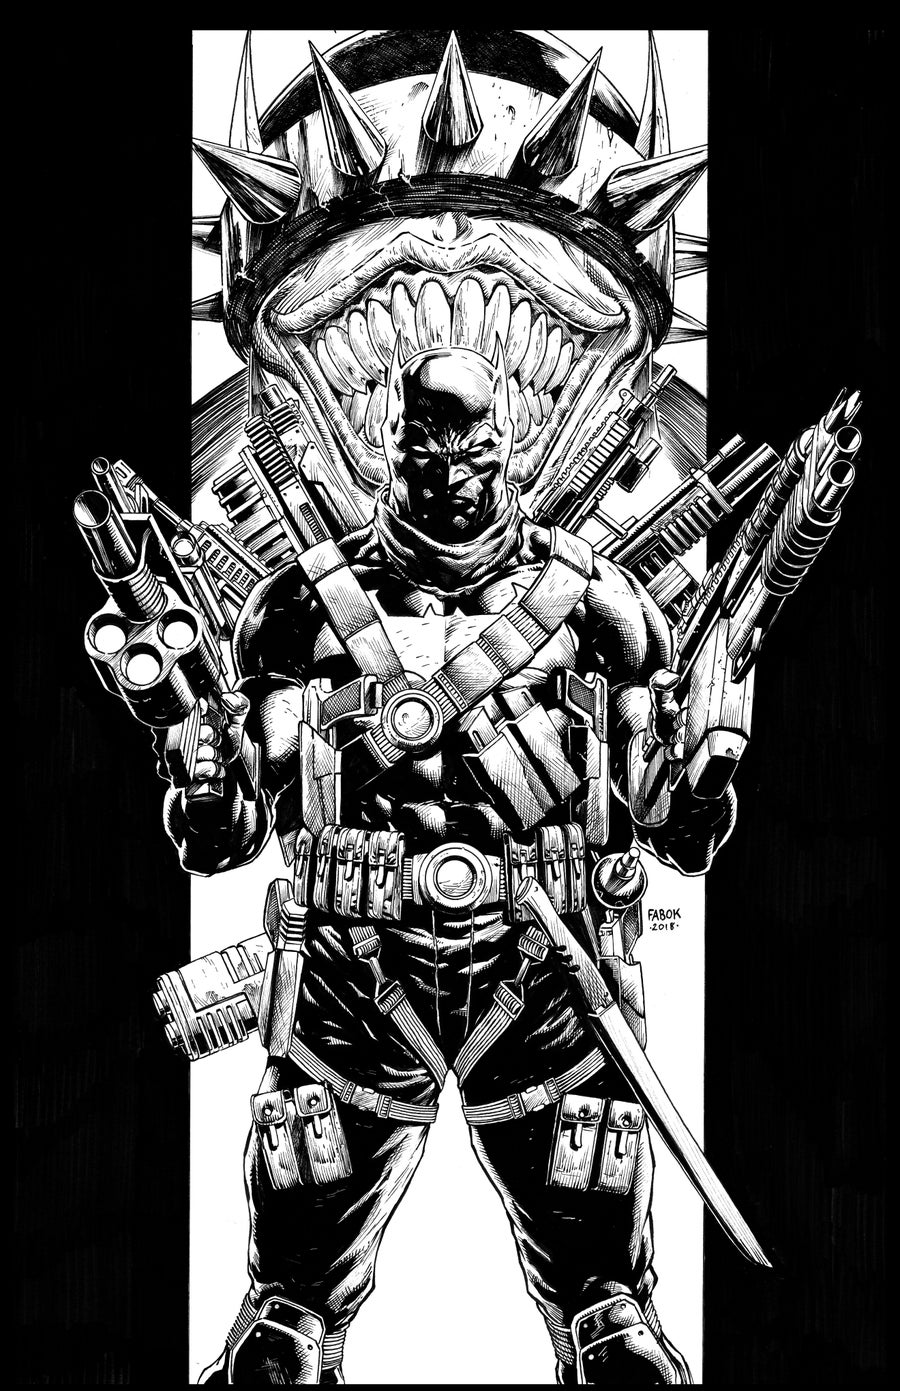 Image of Batman Who Laughs #1 Variant Cover